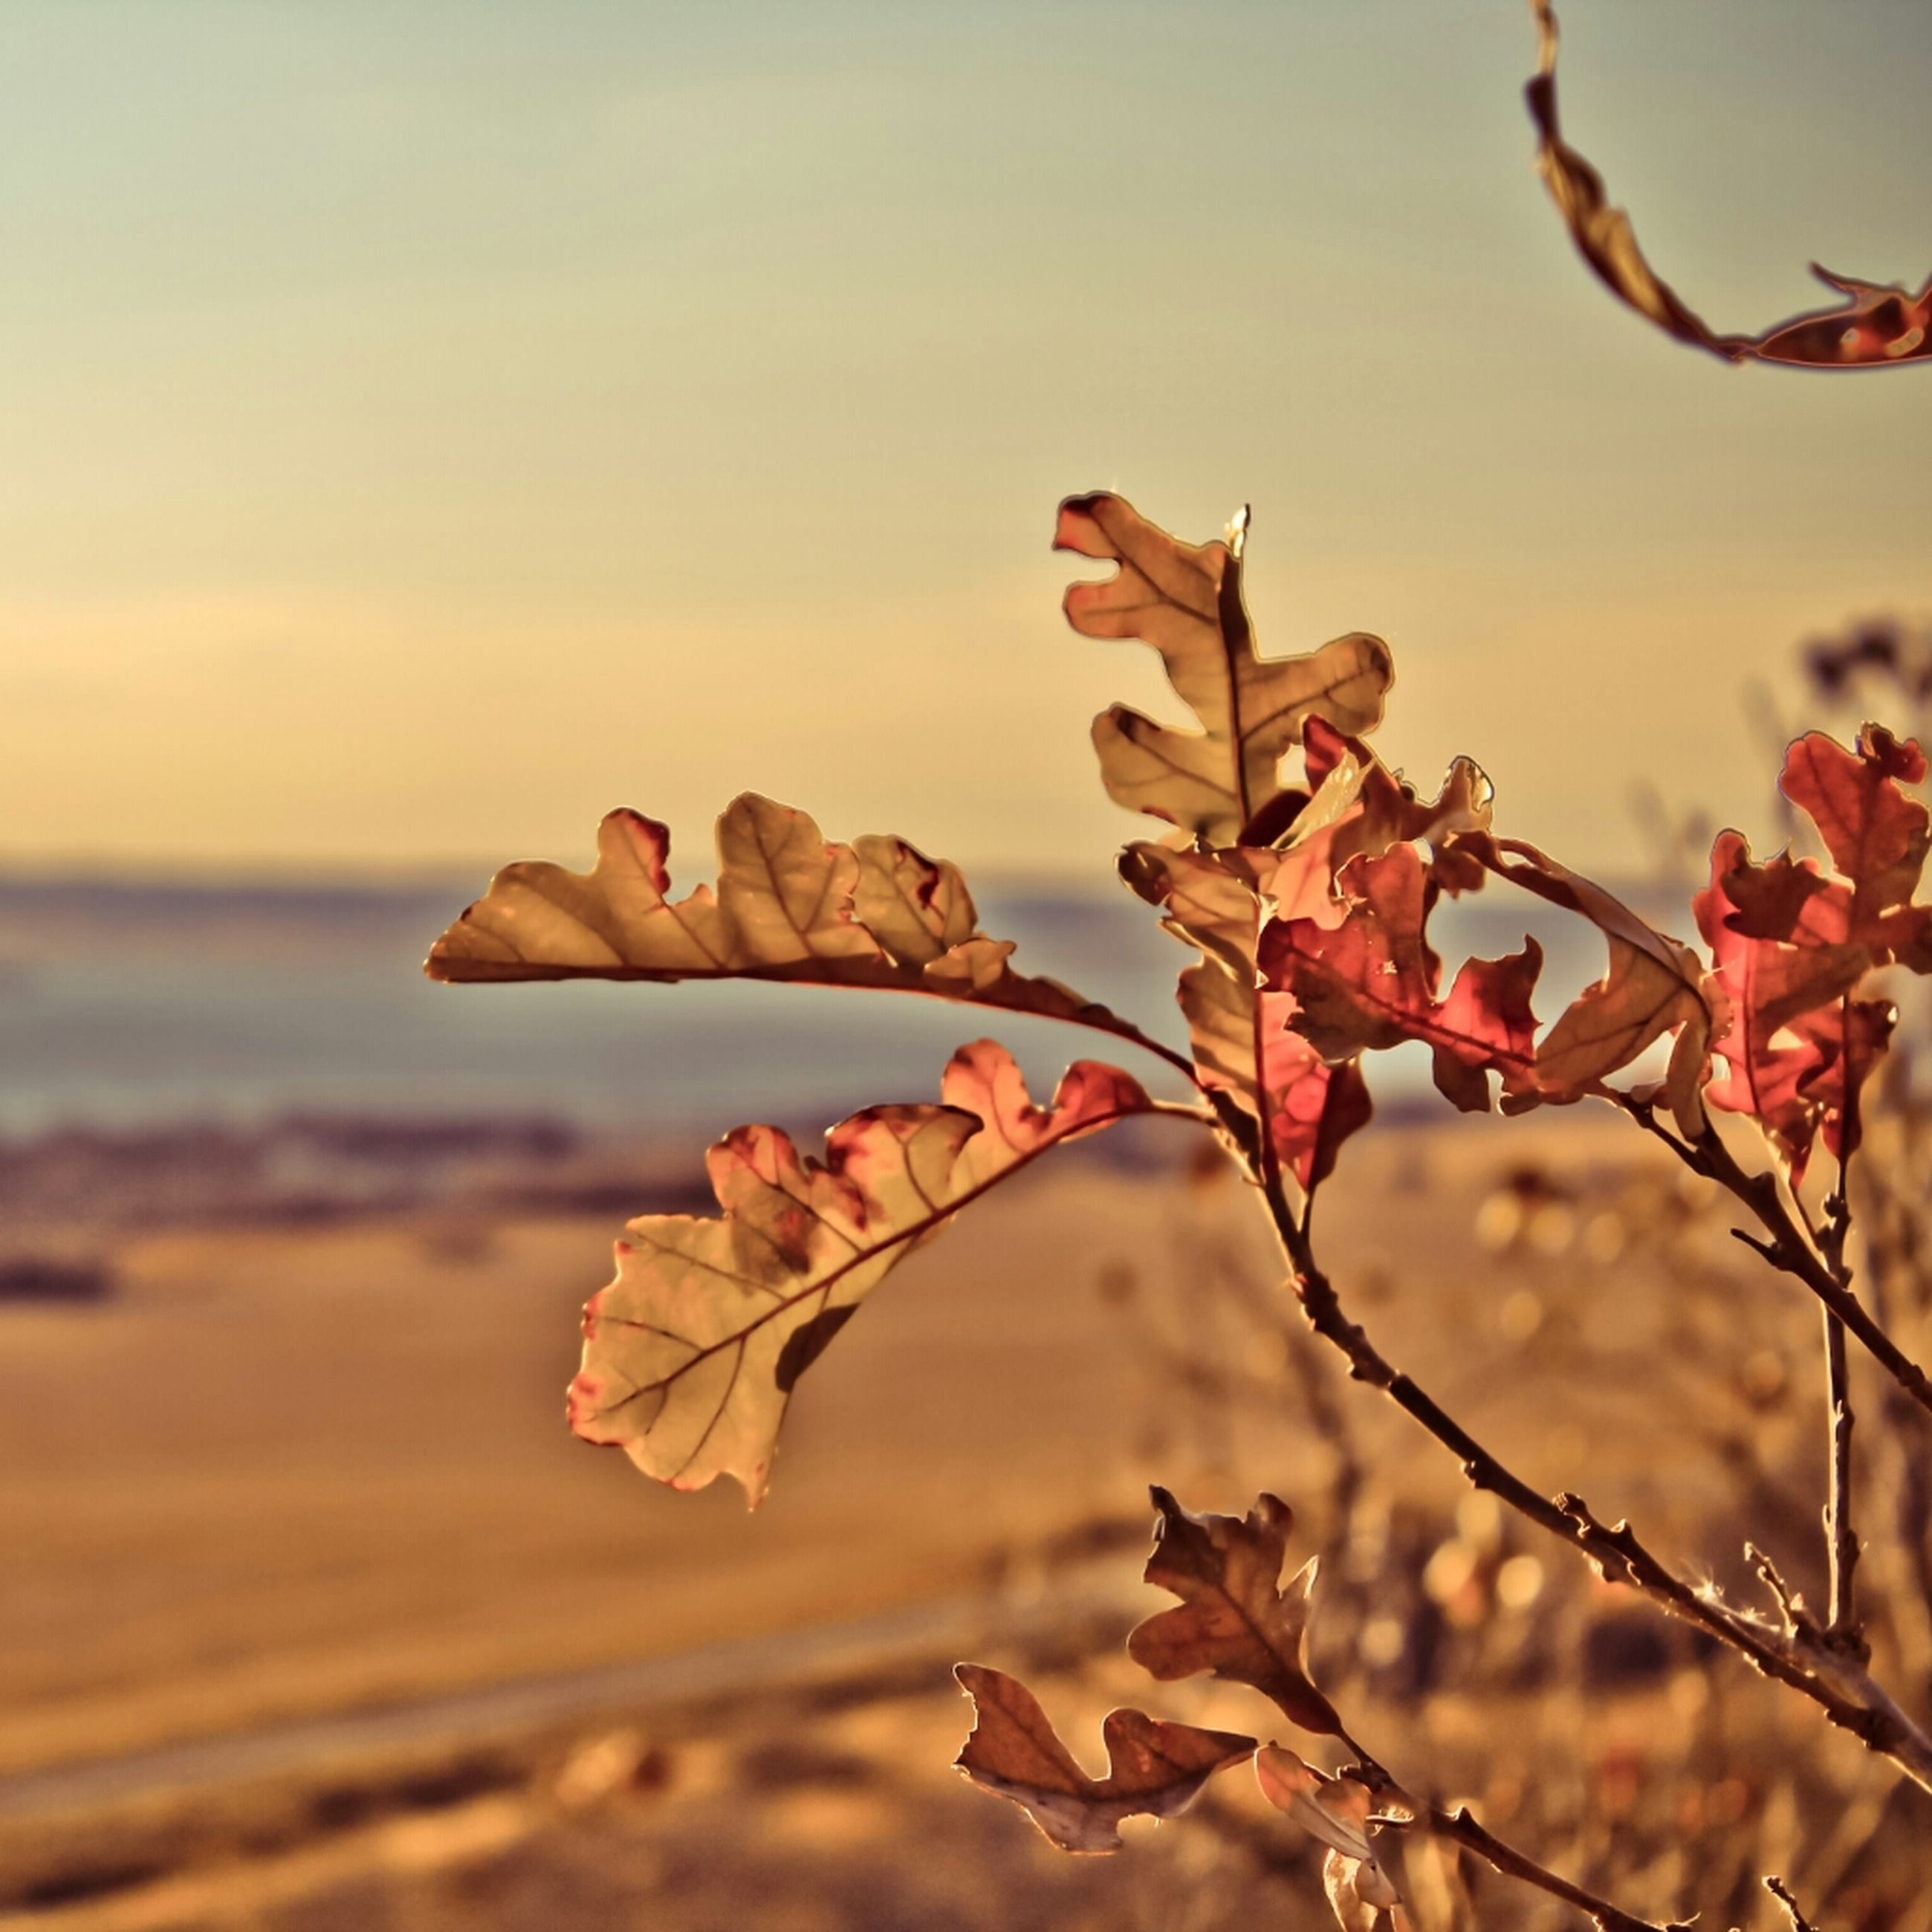 focus on foreground, close-up, nature, tranquility, dry, sky, branch, clear sky, selective focus, beauty in nature, beach, leaf, outdoors, no people, tranquil scene, day, tree, twig, scenics, sea